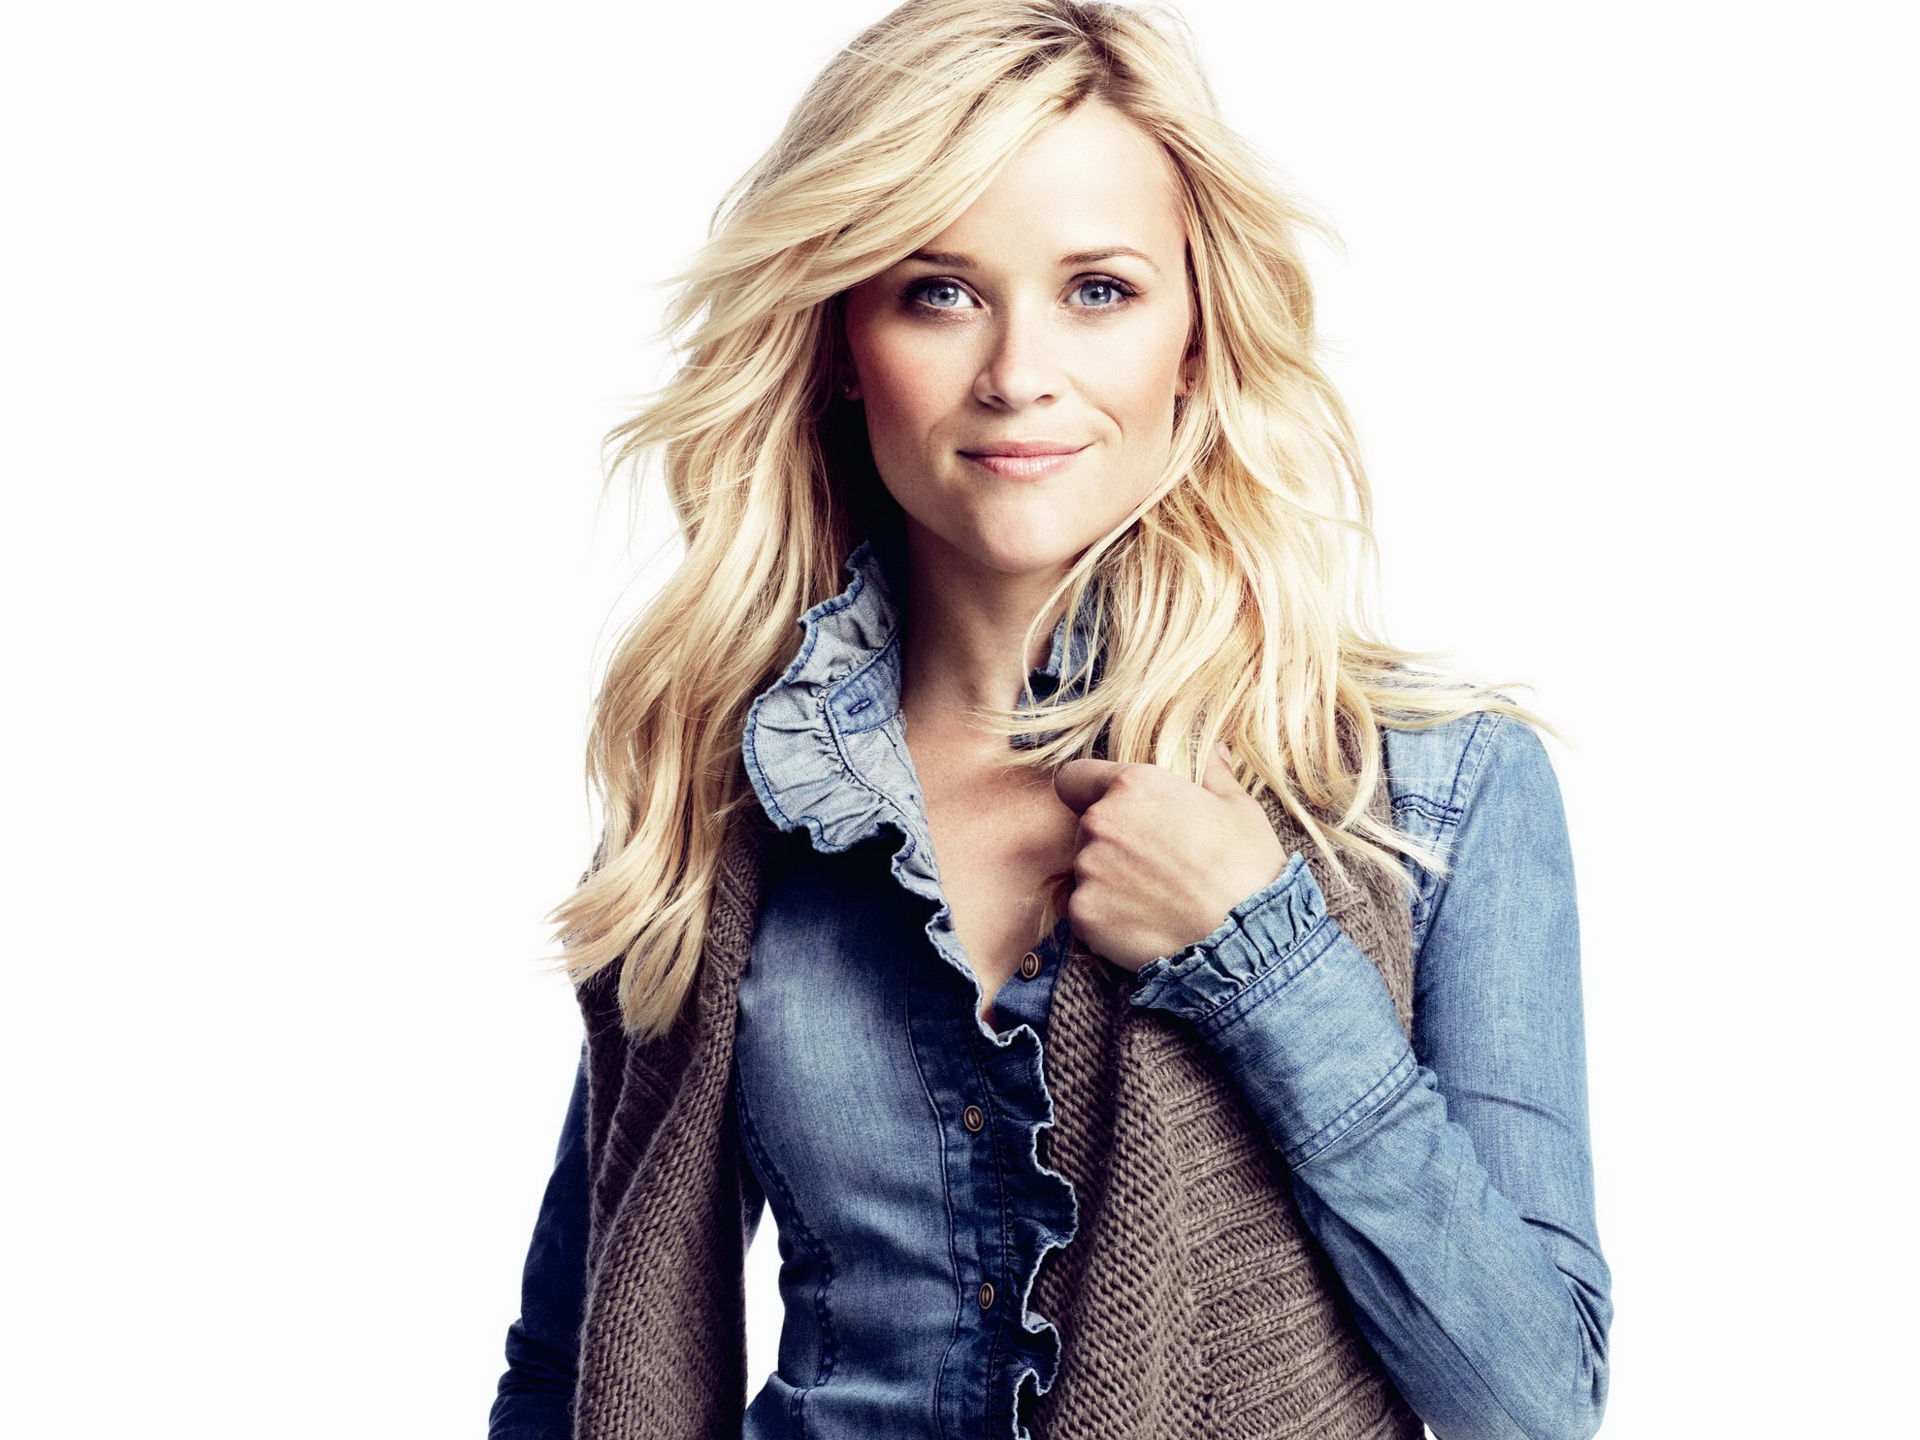 reese-witherspoon-wallpaper-2